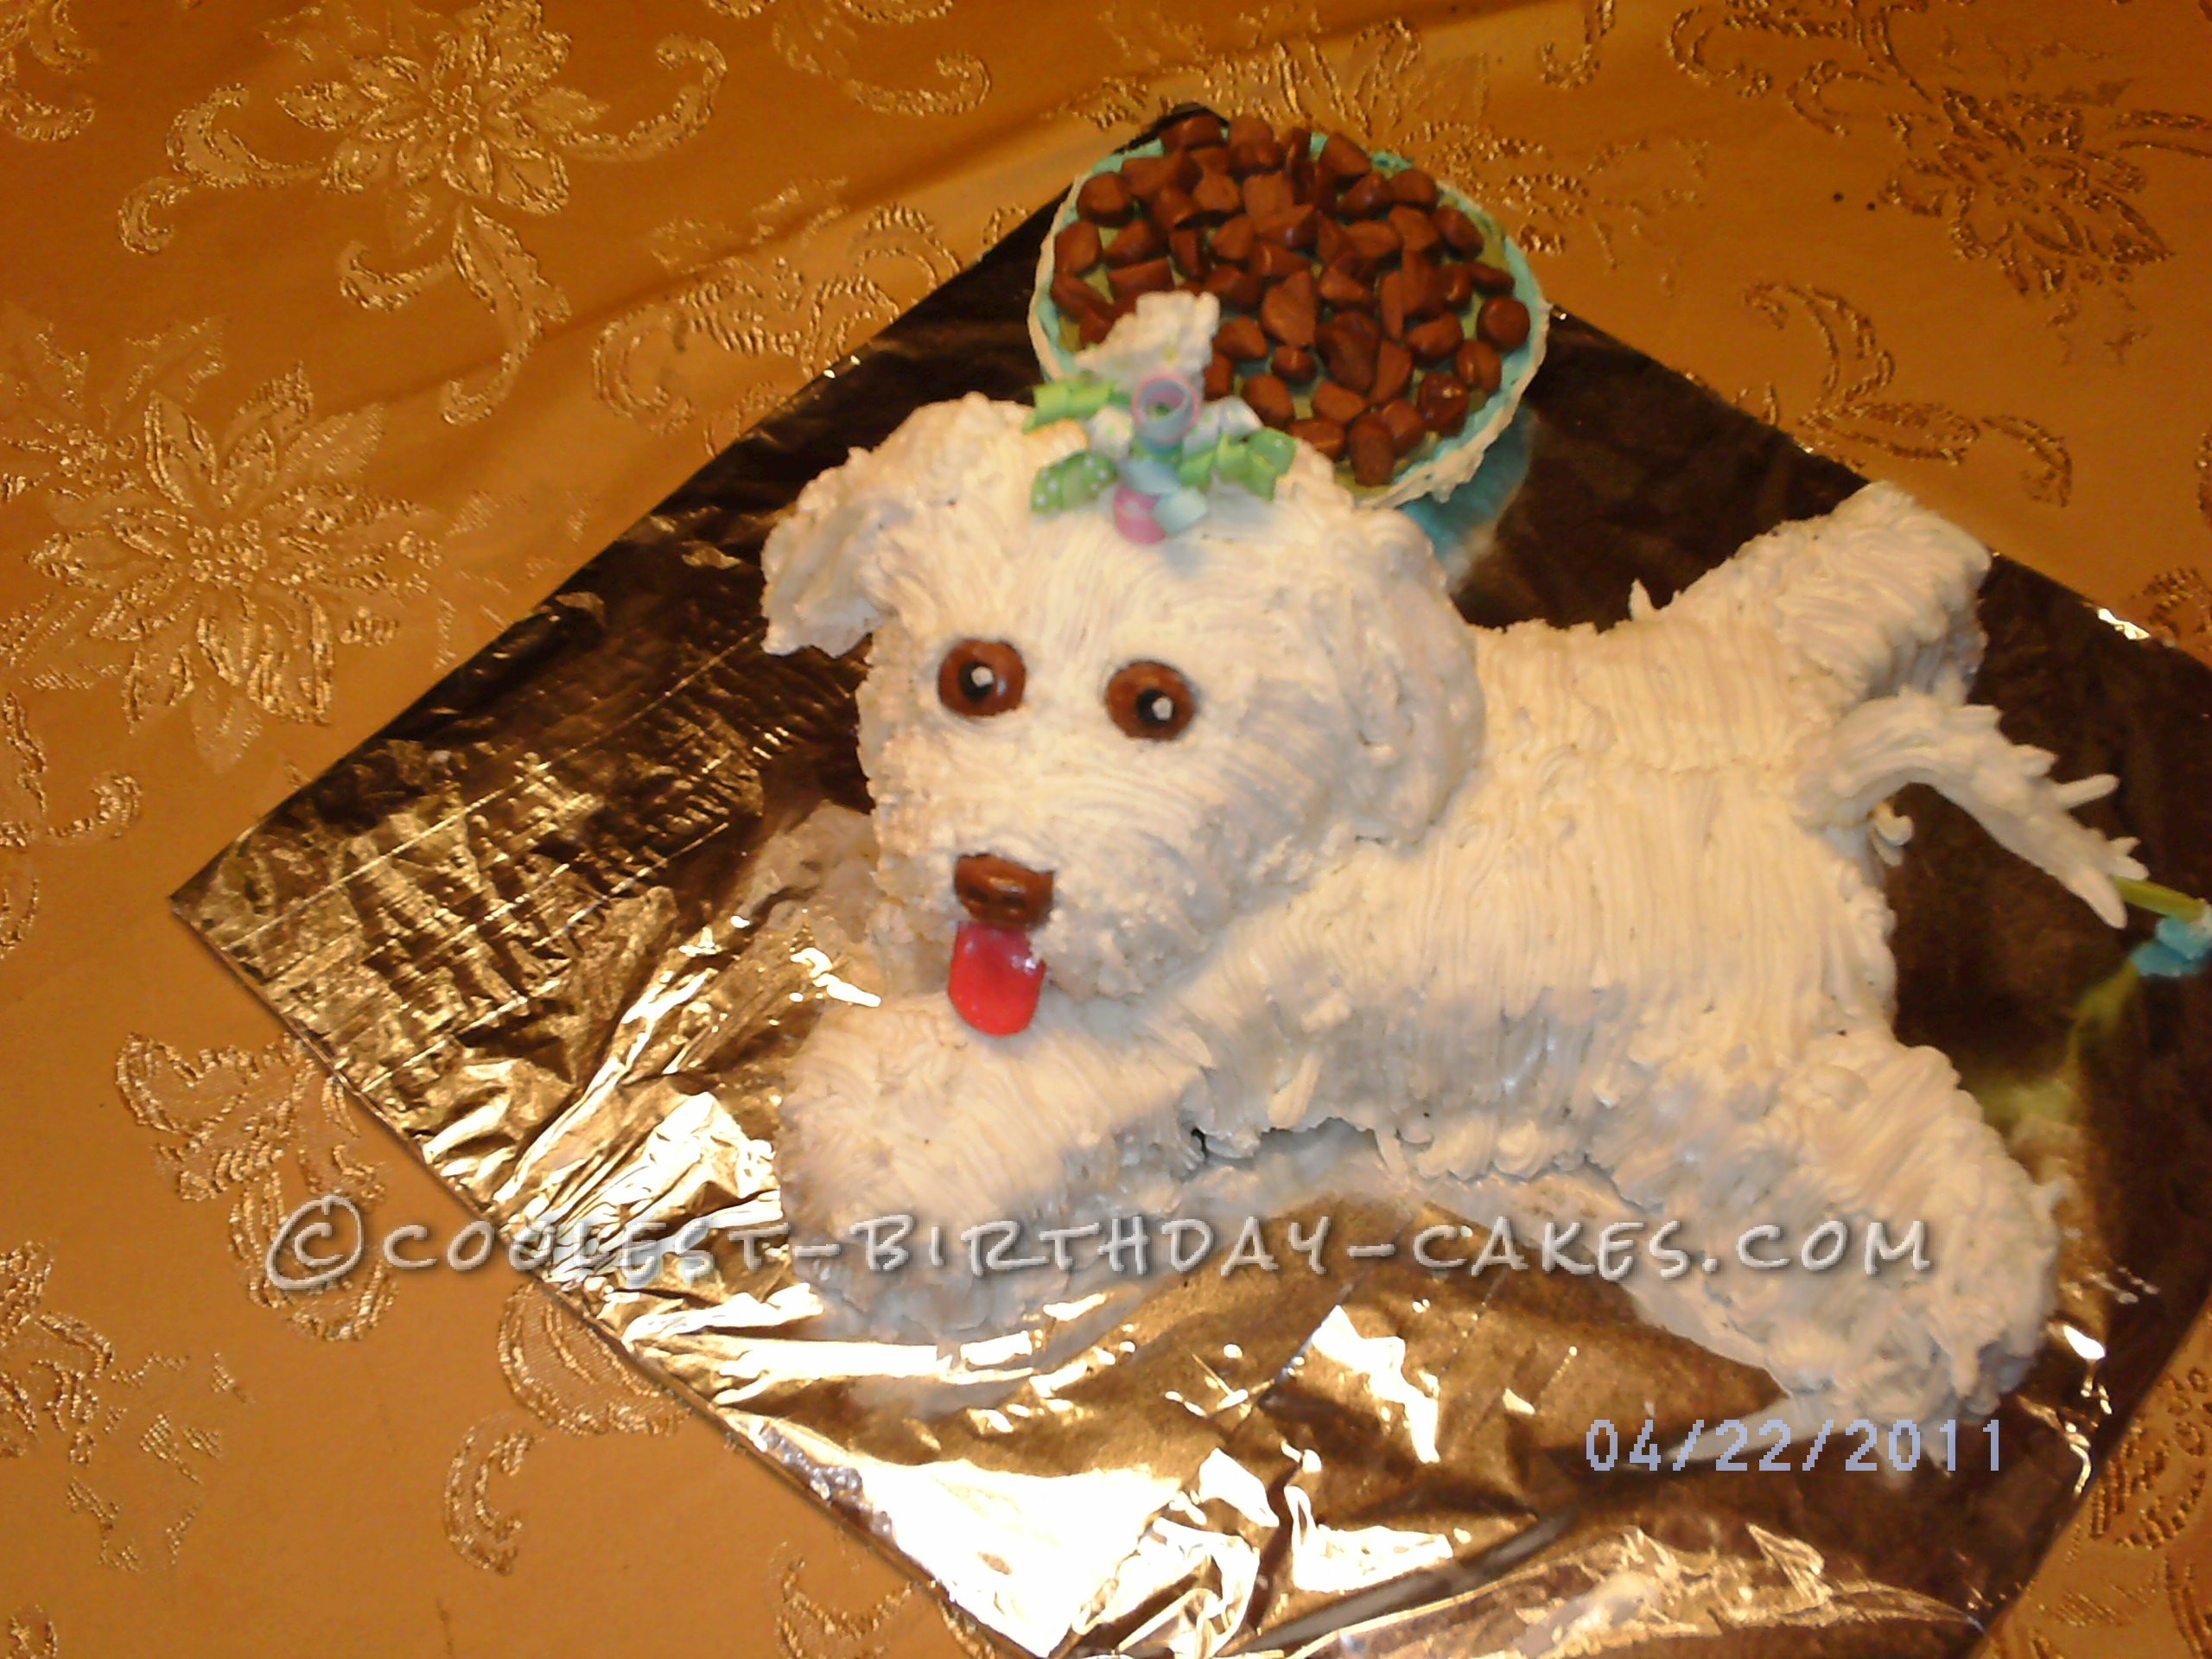 Coolest Pup Cake